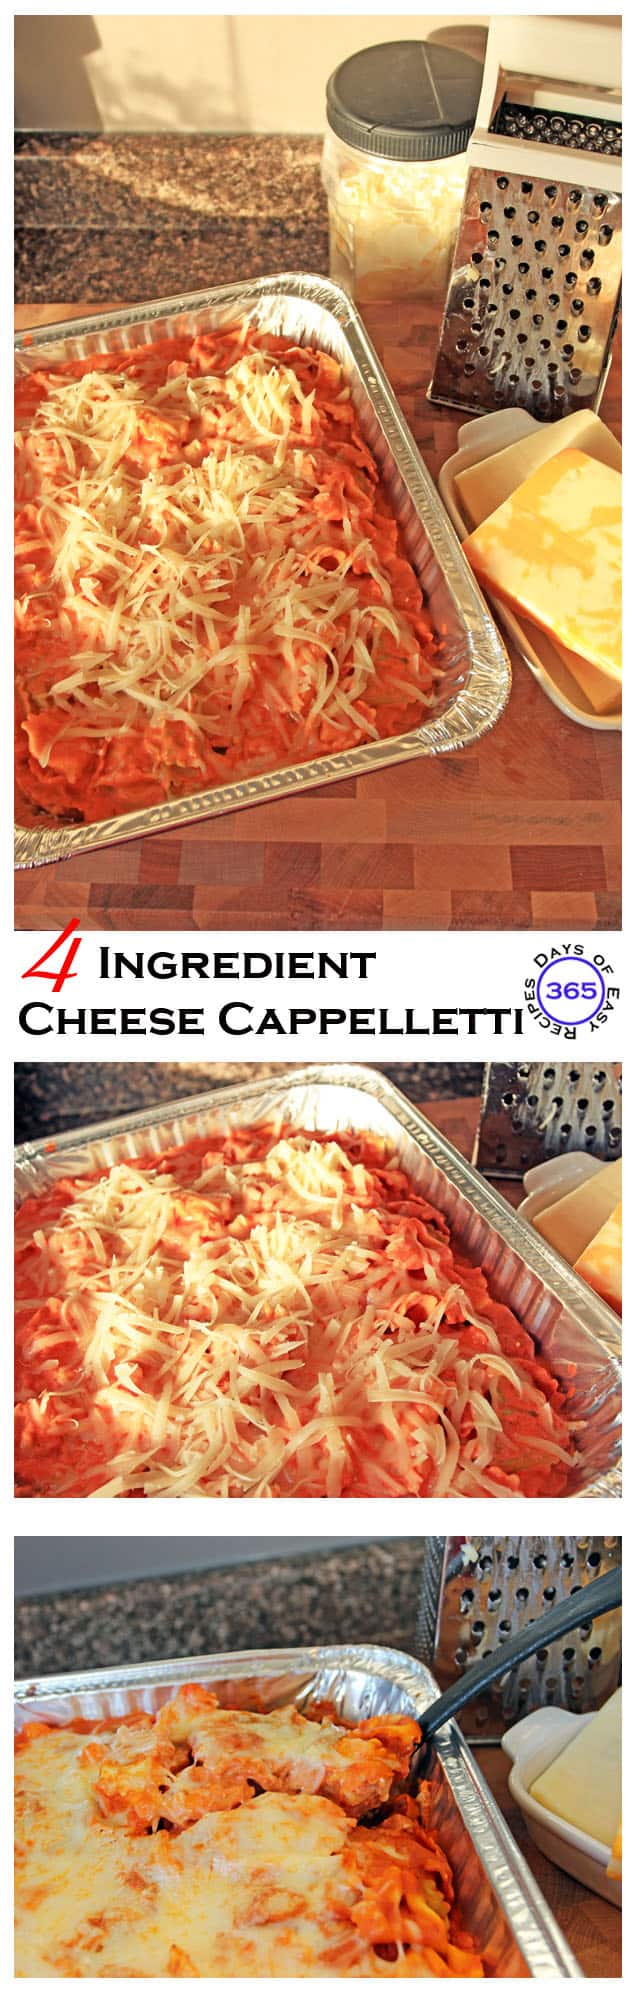 4 Ingredient Cheese Cappelletti | 365 Days of Easy Recipes